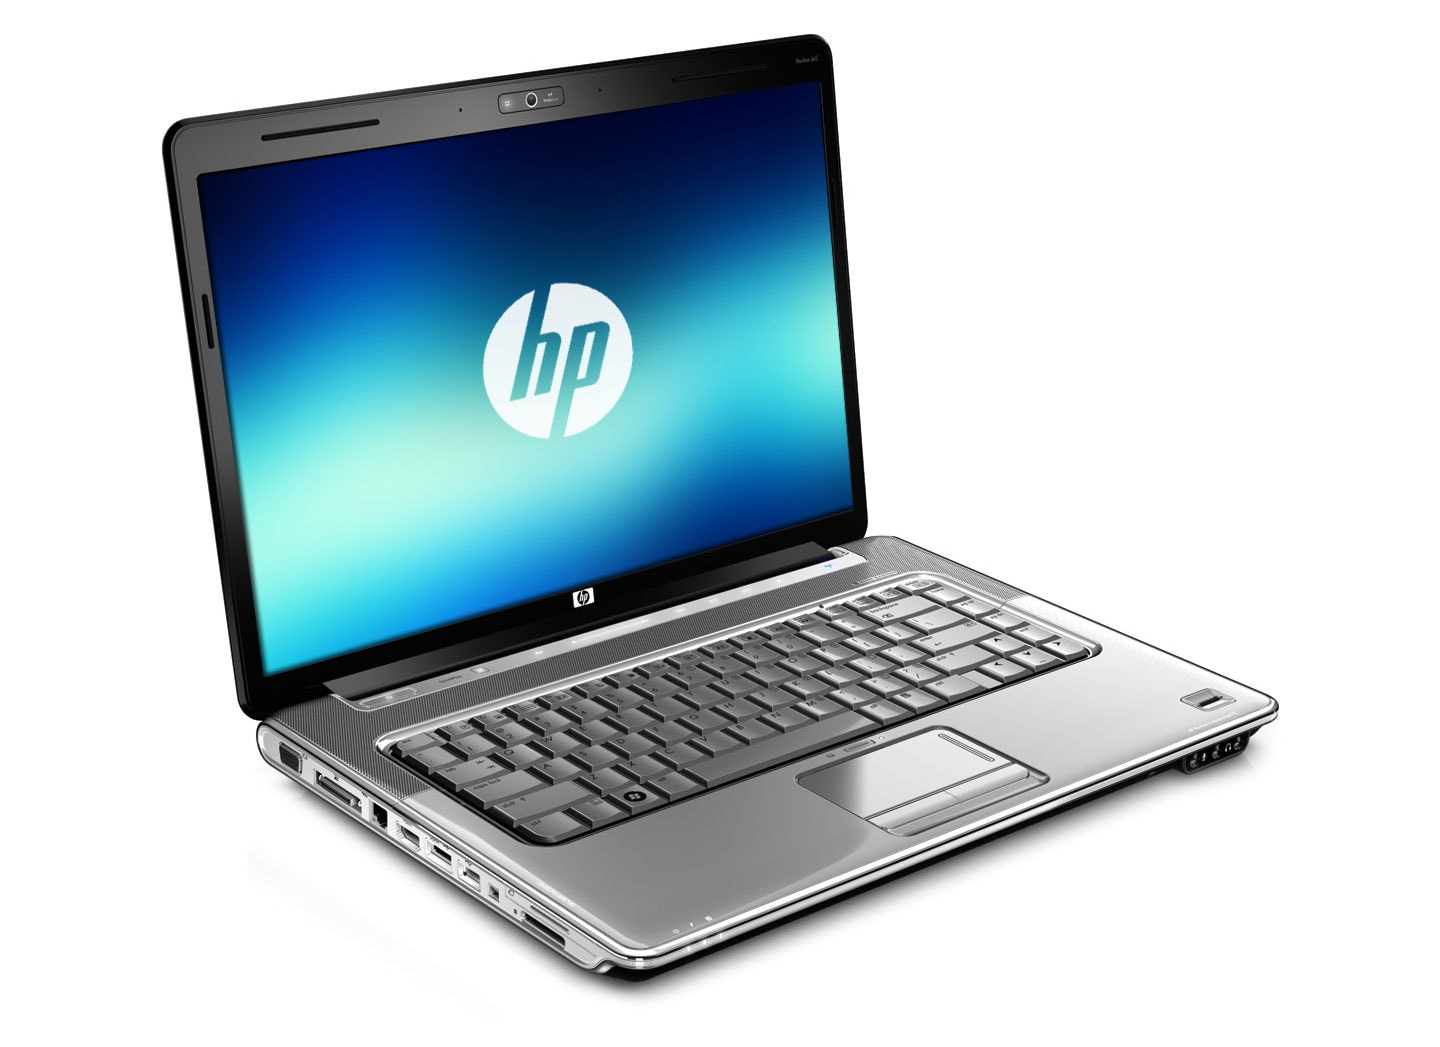 Where I can find the Hp pavilion dvus drivers for Windows XP